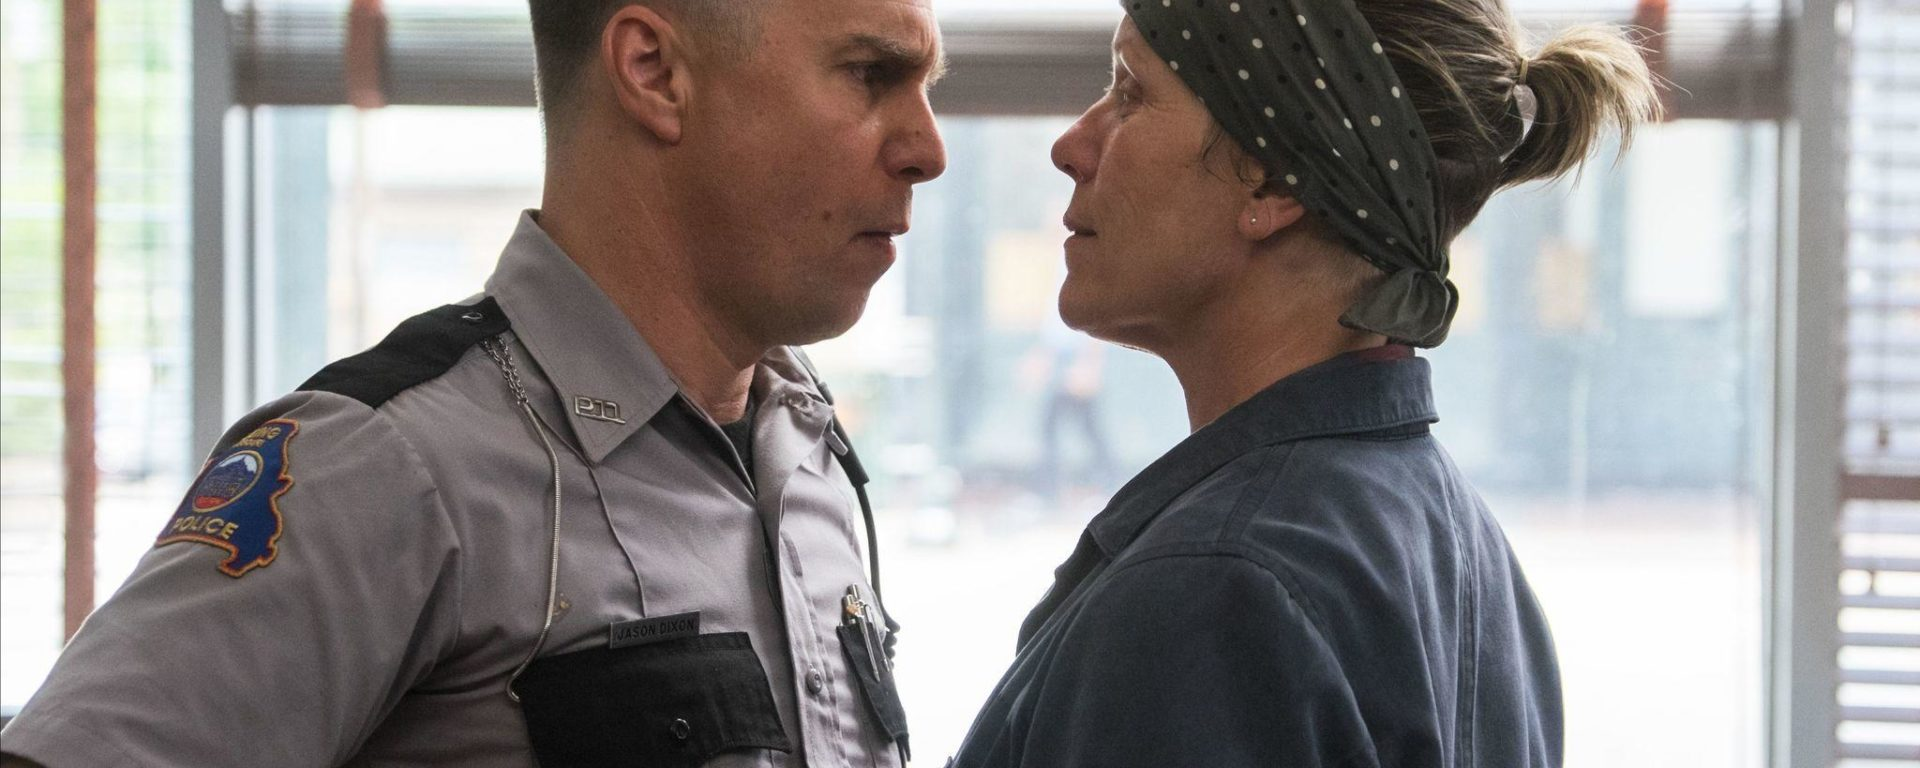 Three Billboards Outside Ebbing Missouri Less Than The Sum Of Its Parts There Is Something Faintly Indulgent About It As If Rather Singling Out A